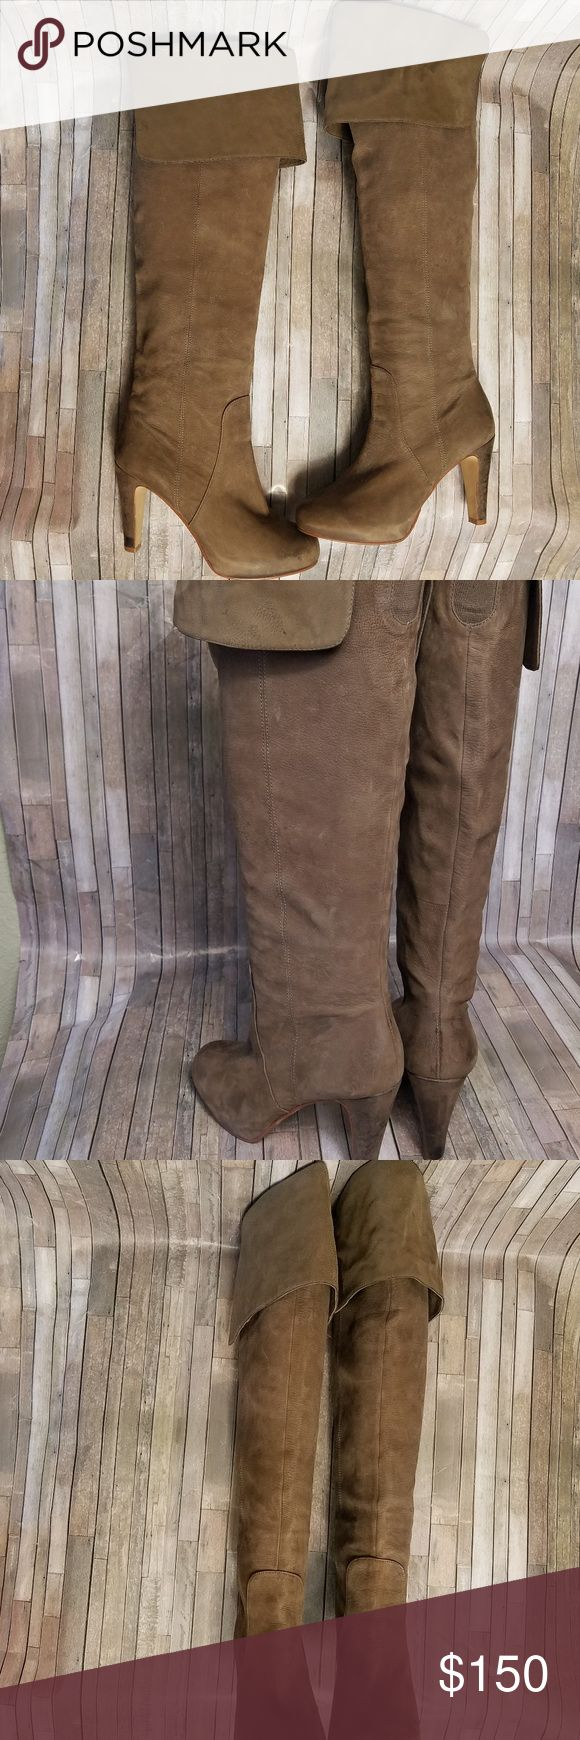 Aldo Cayoosh Thigh high leather boots Sz 6.5 This listing is for a pair of Aldo Thigh high leather boots. The boot heel height is 3 1/2 inches The boot size is a 6.5 There are a few small spots on the boot that are barely noticeable. spots are noted in the photos. Aldo Shoes Over the Knee Boots